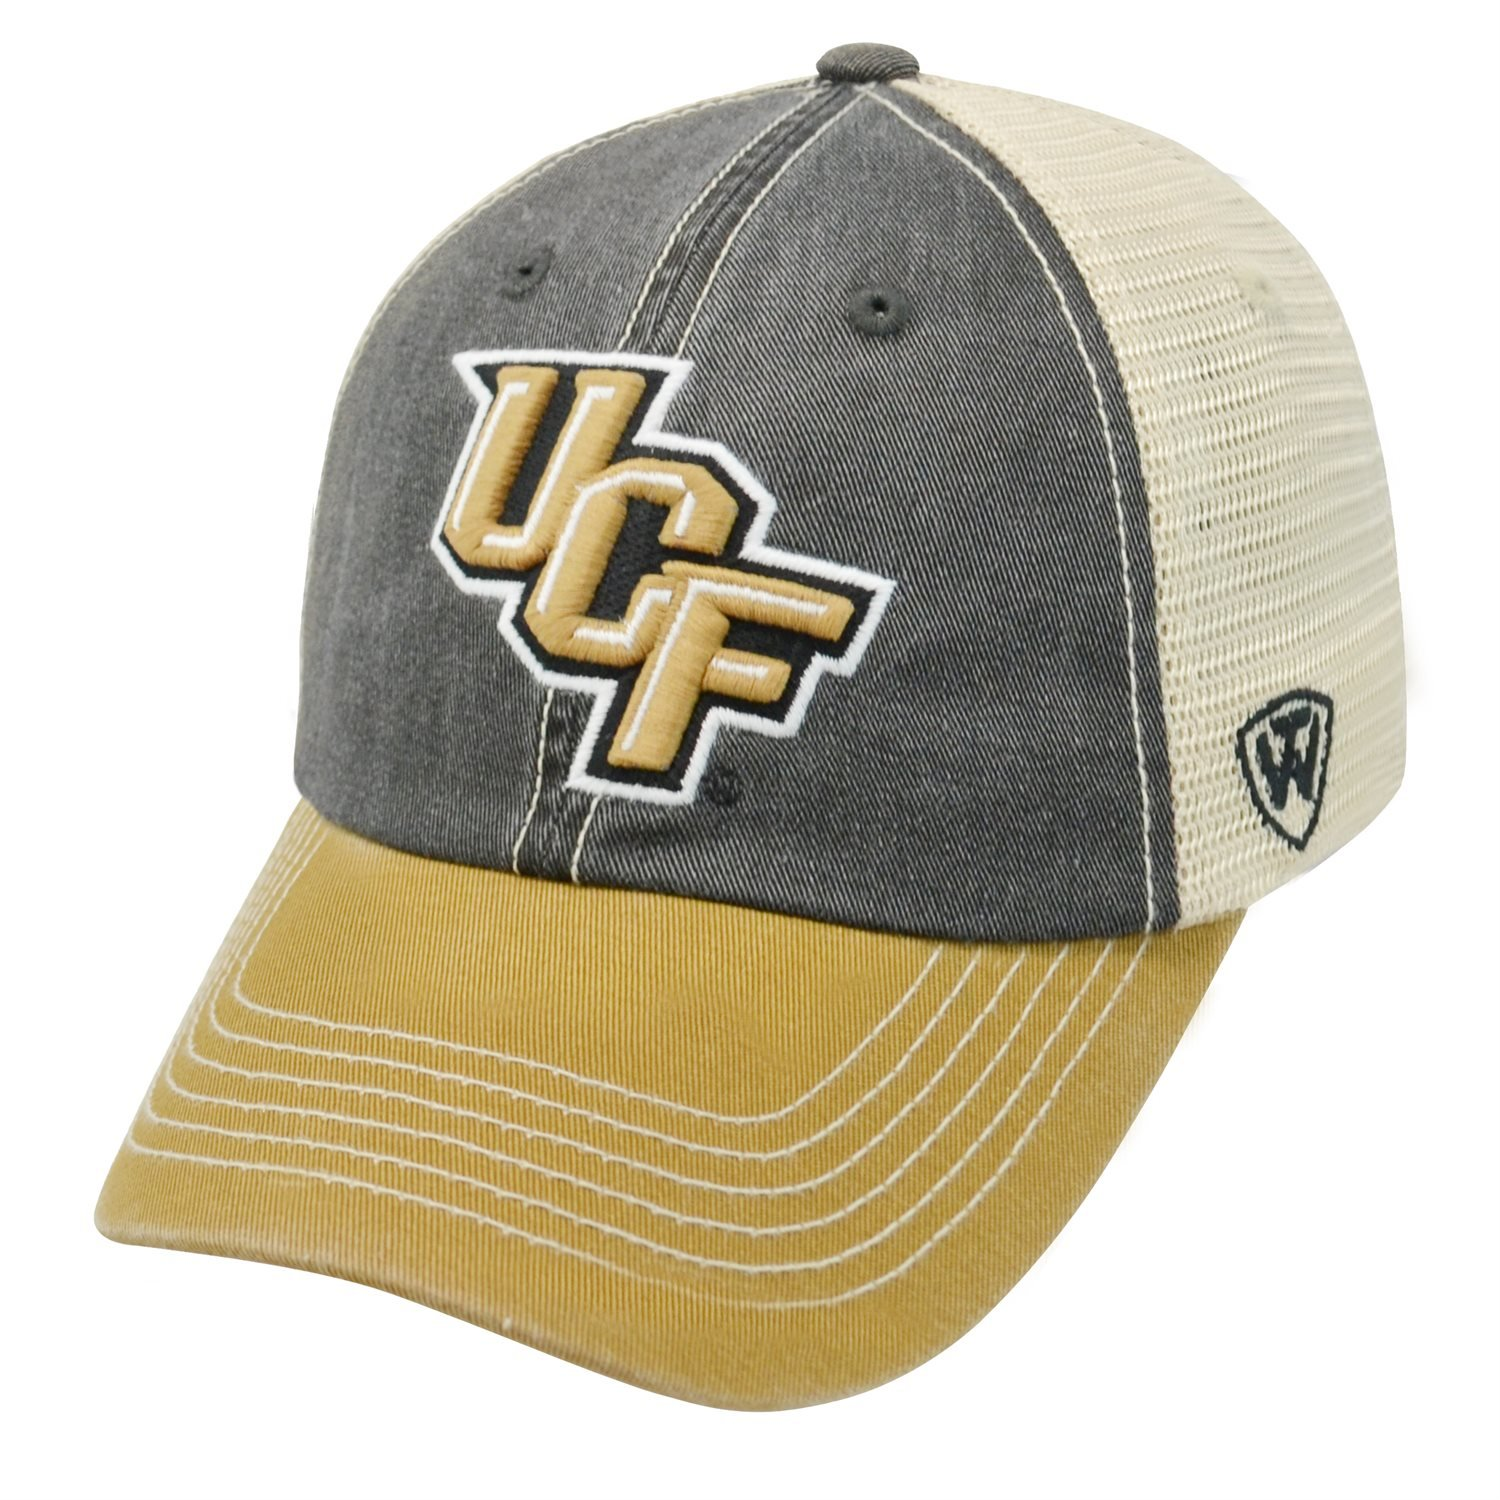 1378752751e75 Amazon.com   UCF Knights Mens Offroad Hat One Size Grey gold   Sports    Outdoors